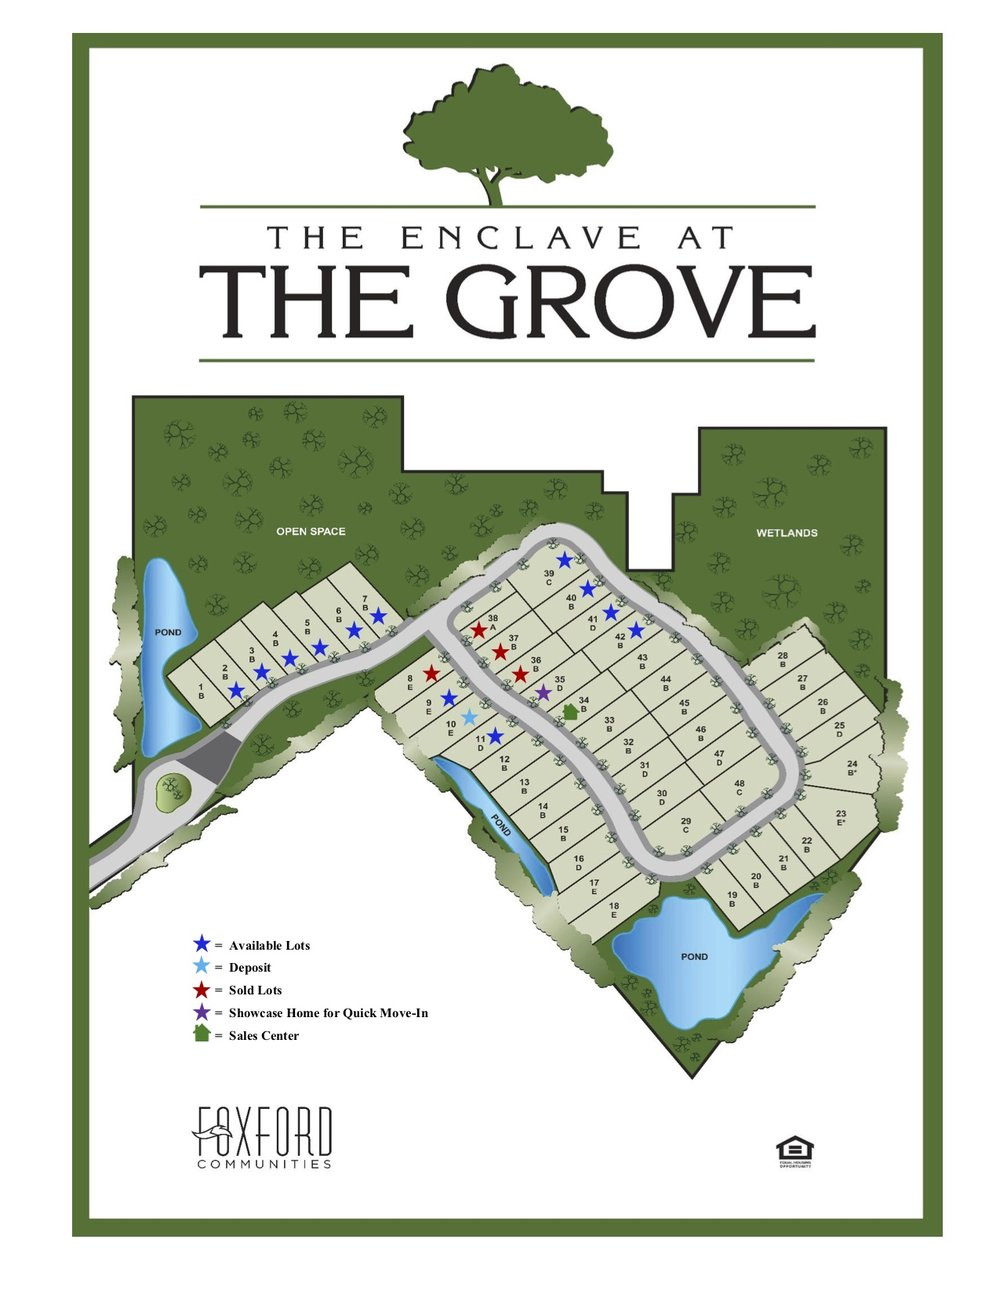 2018-12-06 The Enclave at the Grove Site Map (1).jpg